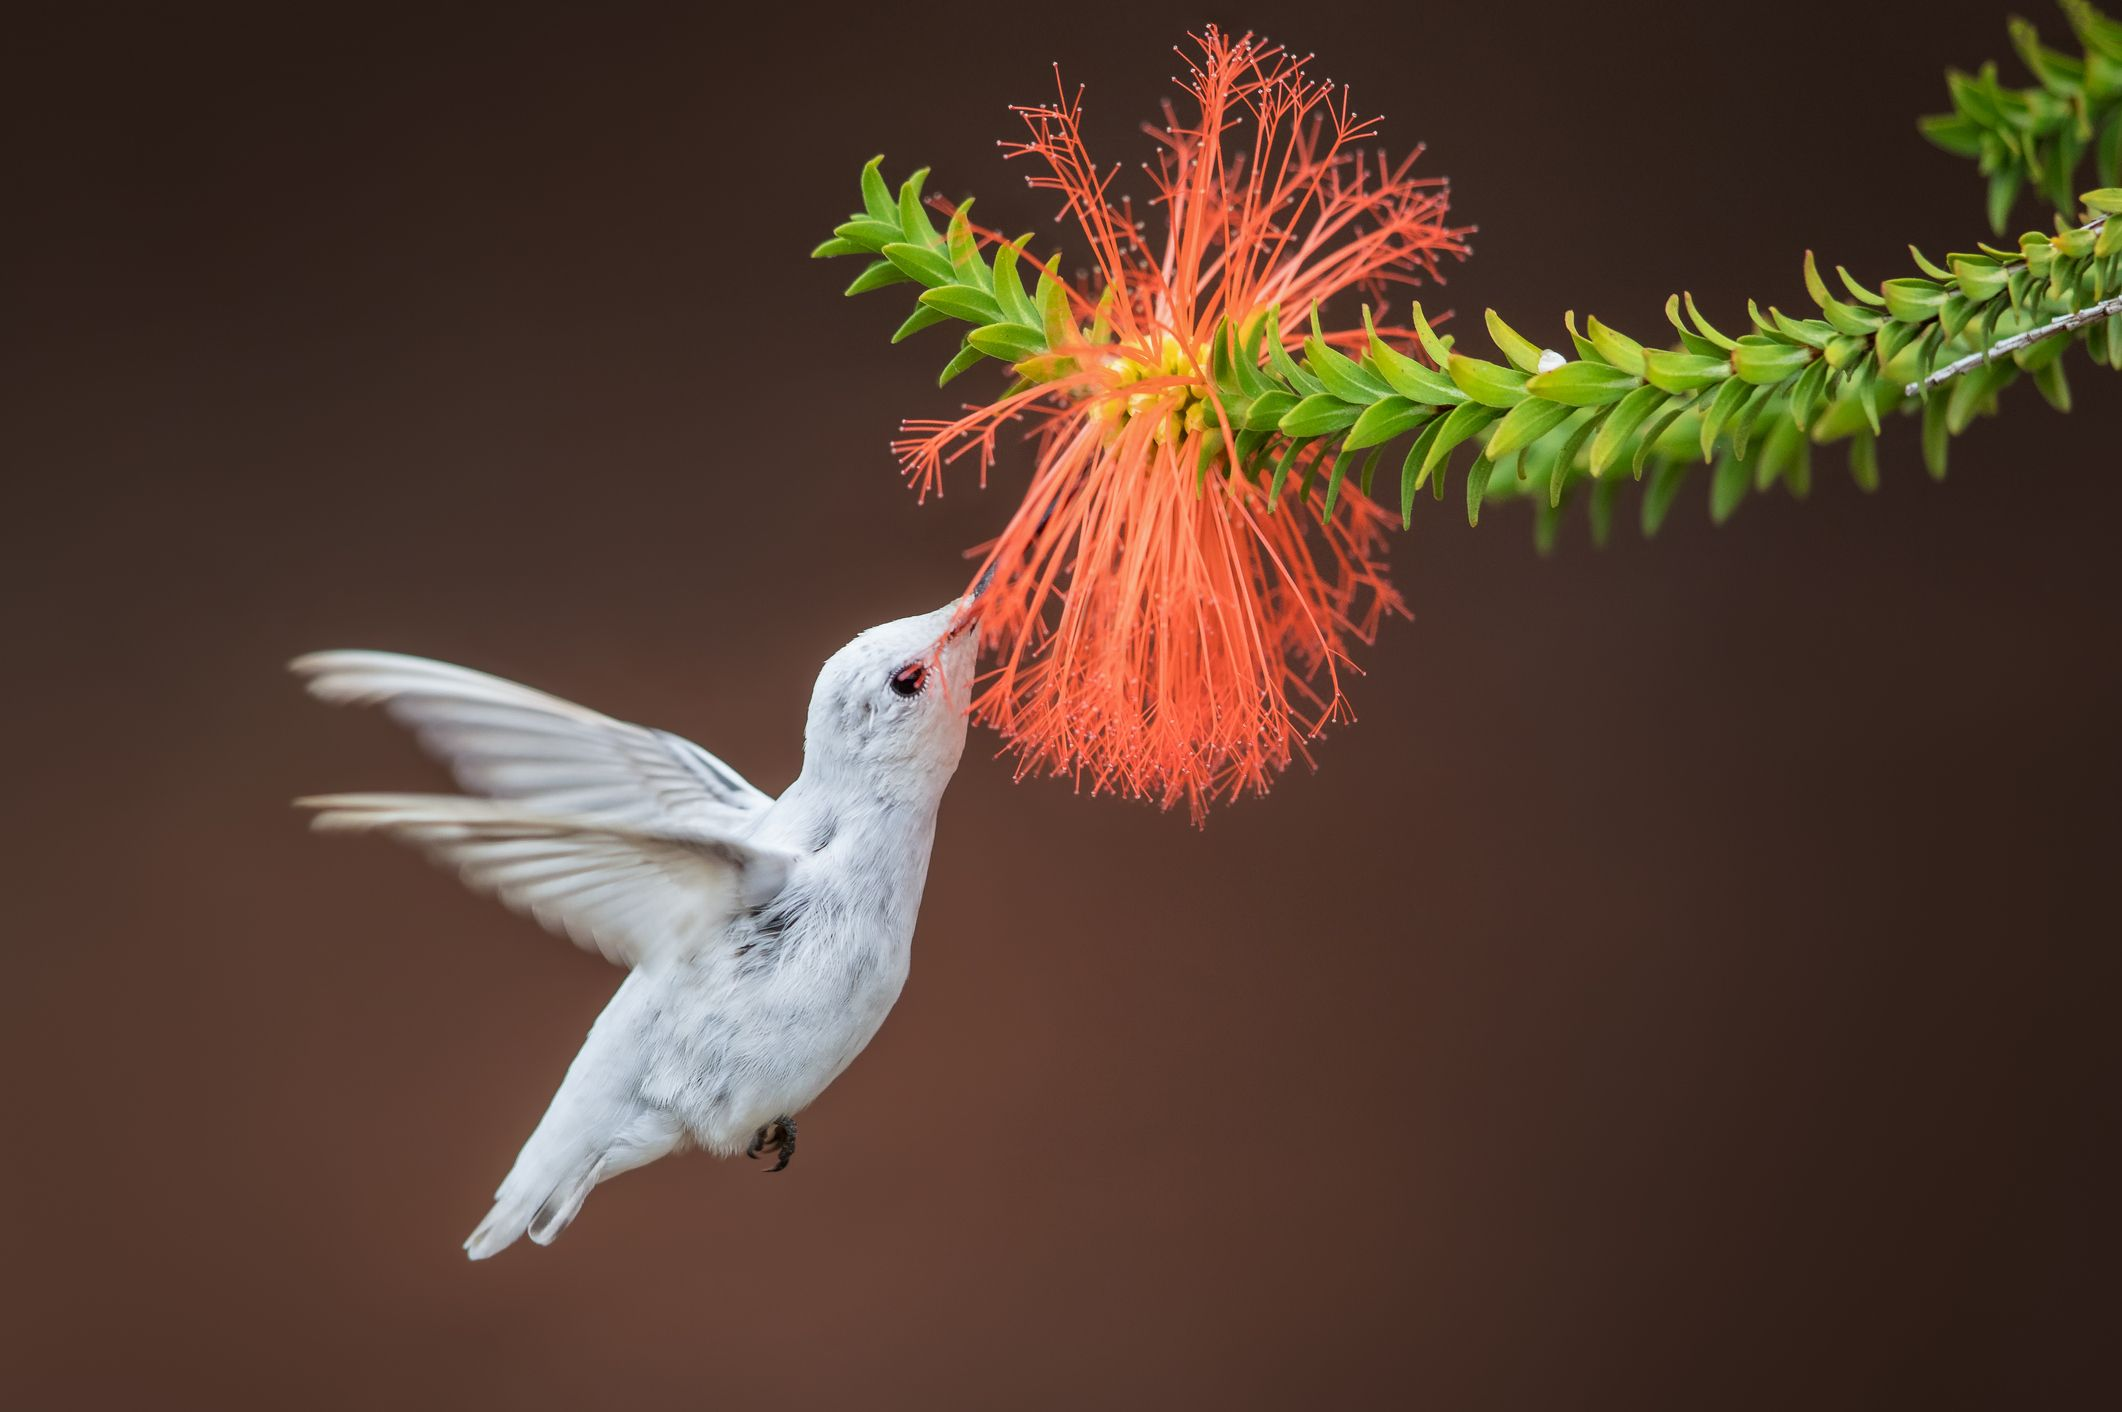 An Extremely Rare Albino Hummingbird Was Spotted in Alabama